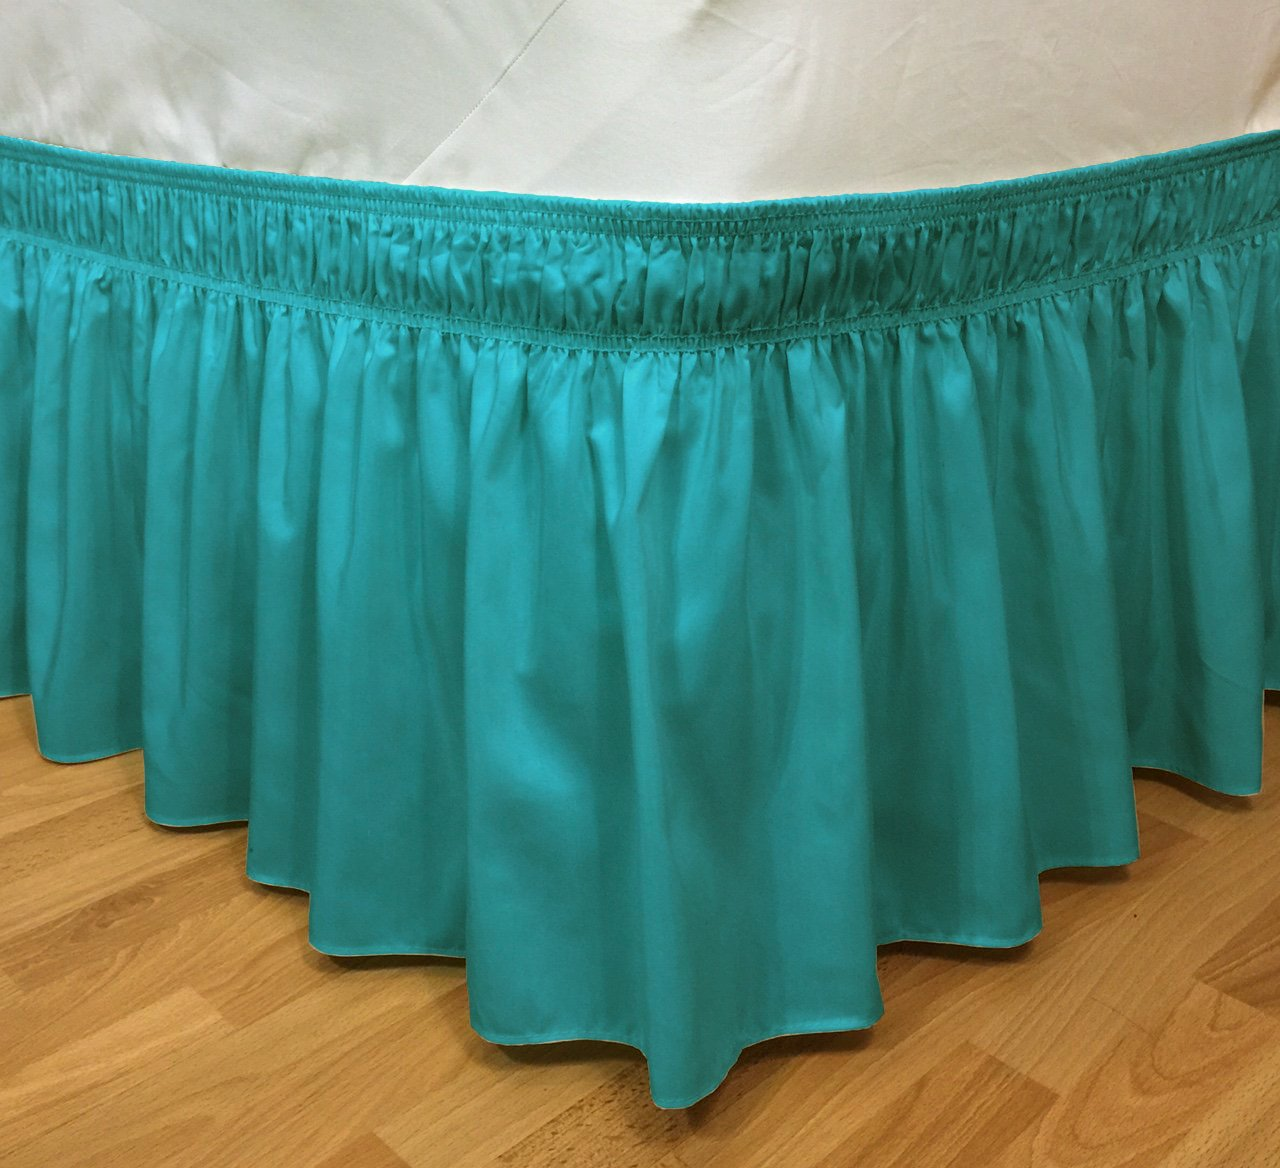 CT DISCOUNT STORE Elastic Ruffle Bed Skirt Easy Warp Around King/Queen Size, Bed Skirt Pins Included By (king/queen, Treasure Turquoise)